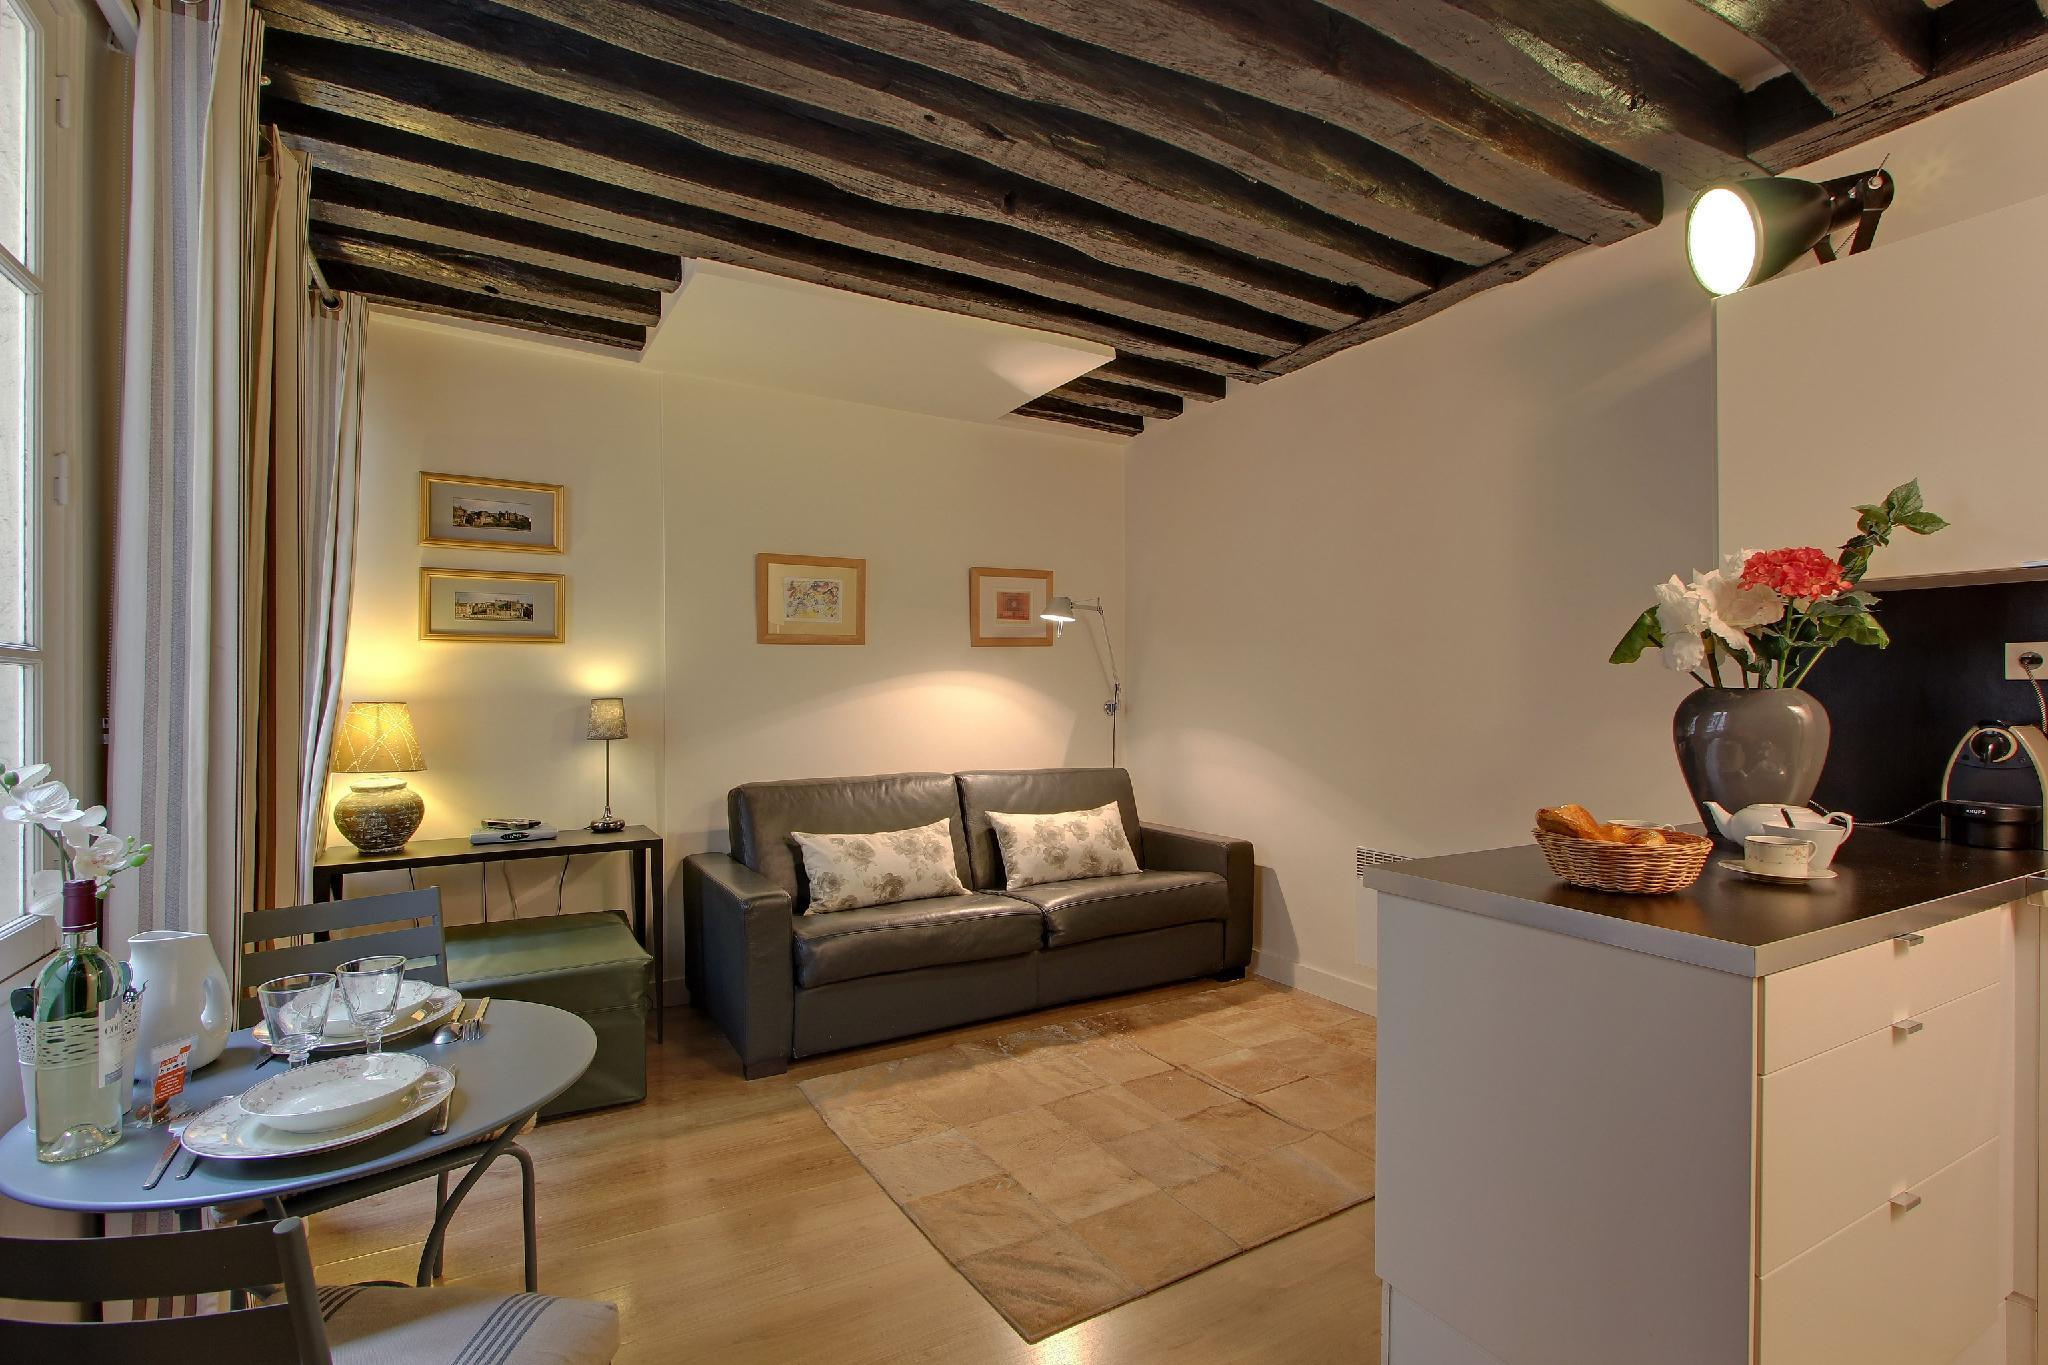 S01223 - A lovely studio overlooking a courtyard for 2 people between Les Halles and Louvre